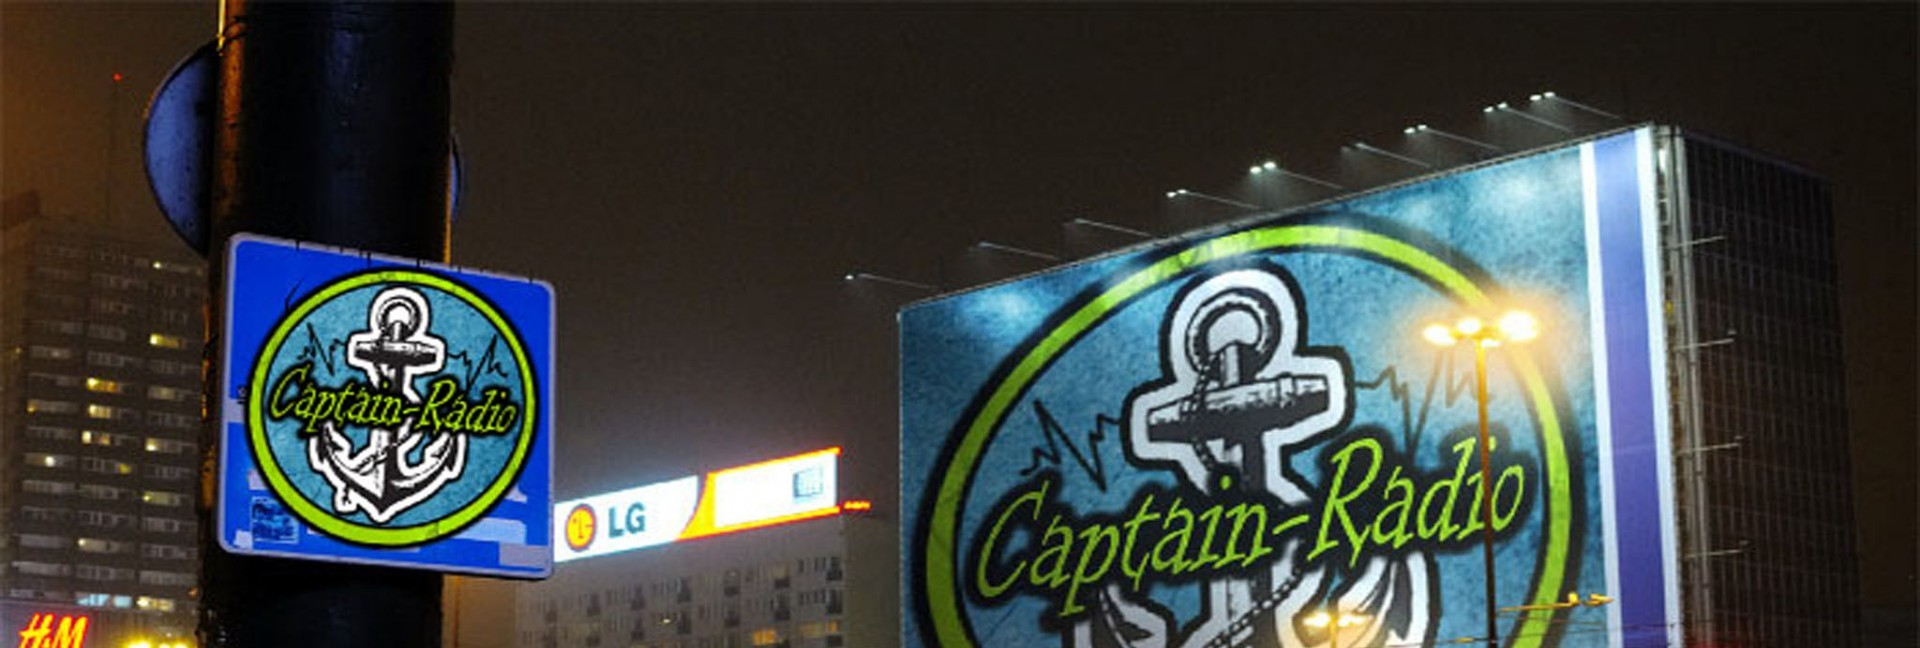 Captain-radio.com Logo